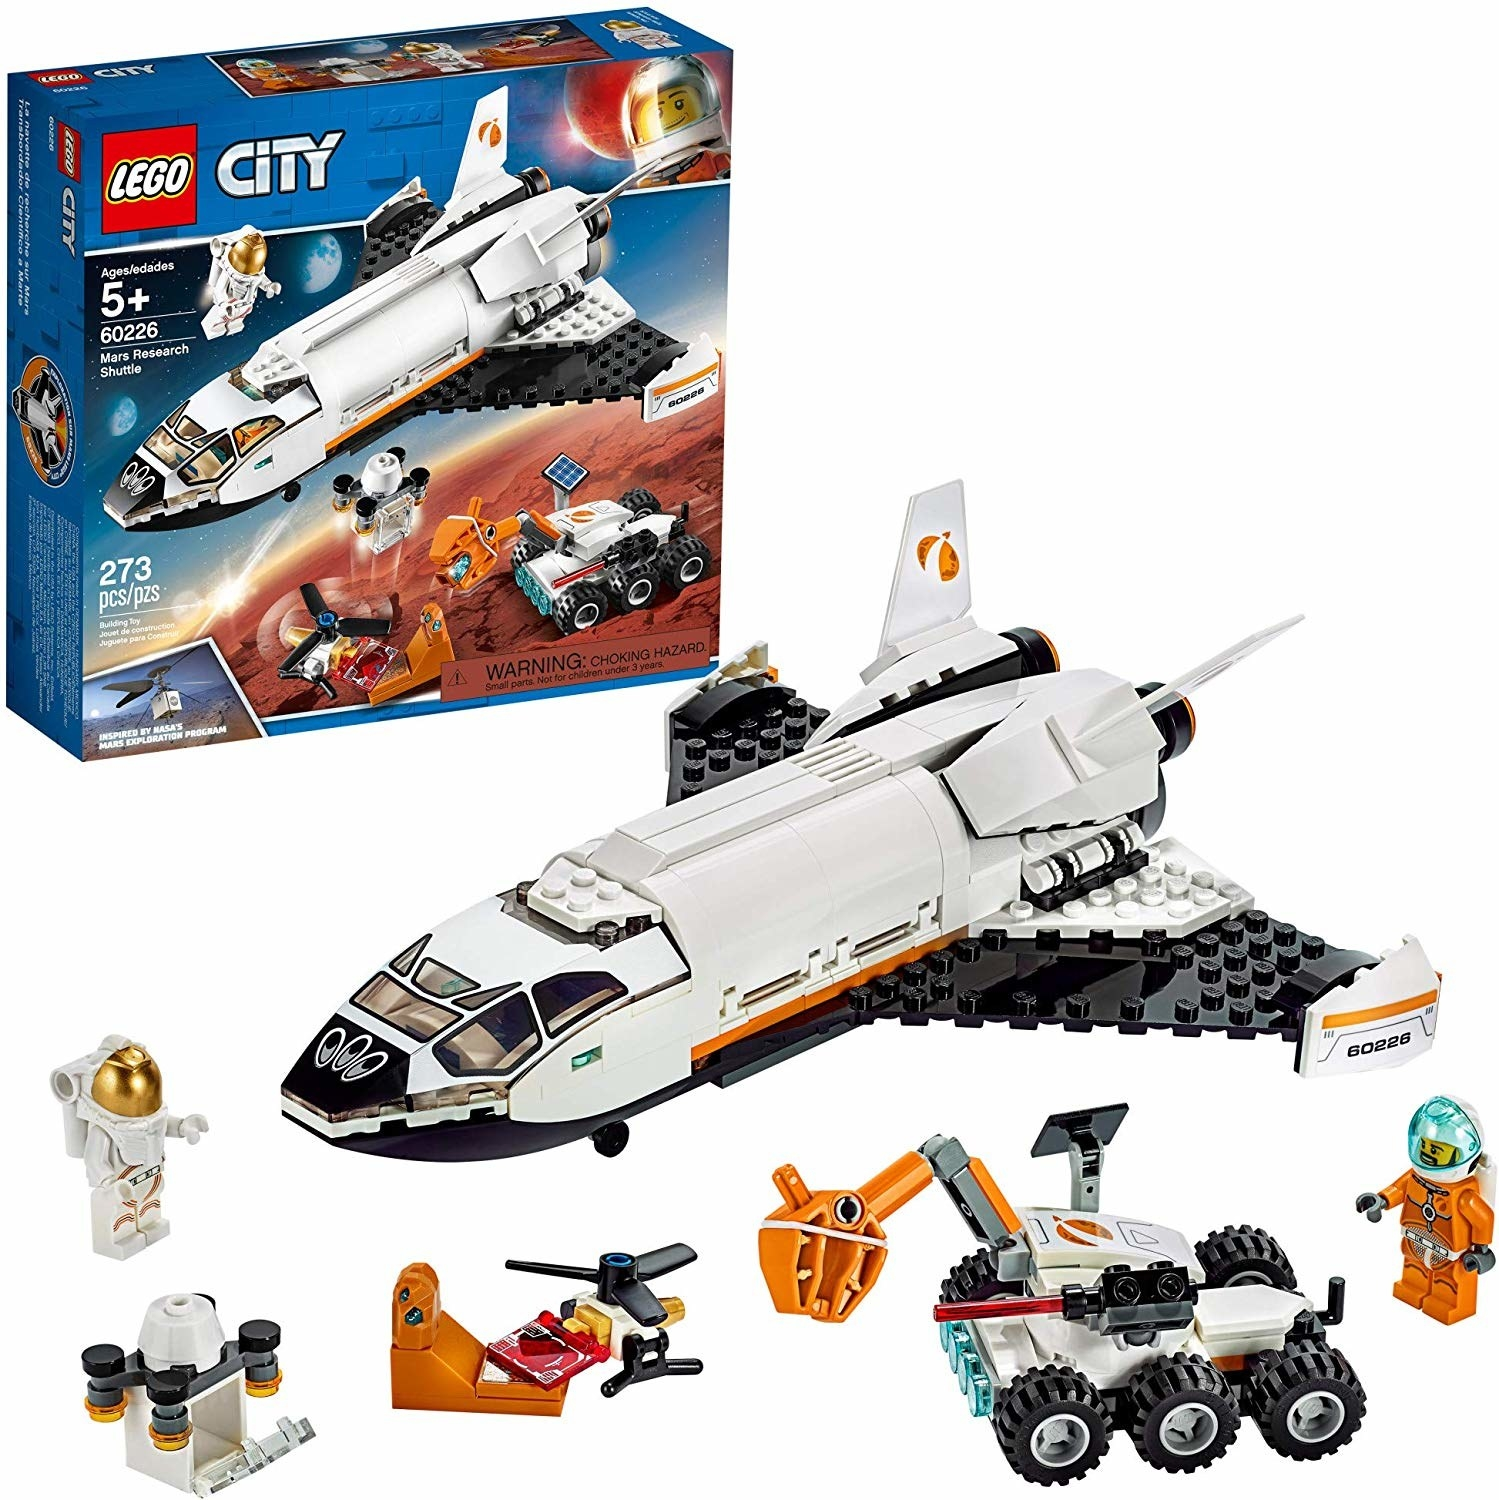 the research shuttle lego set